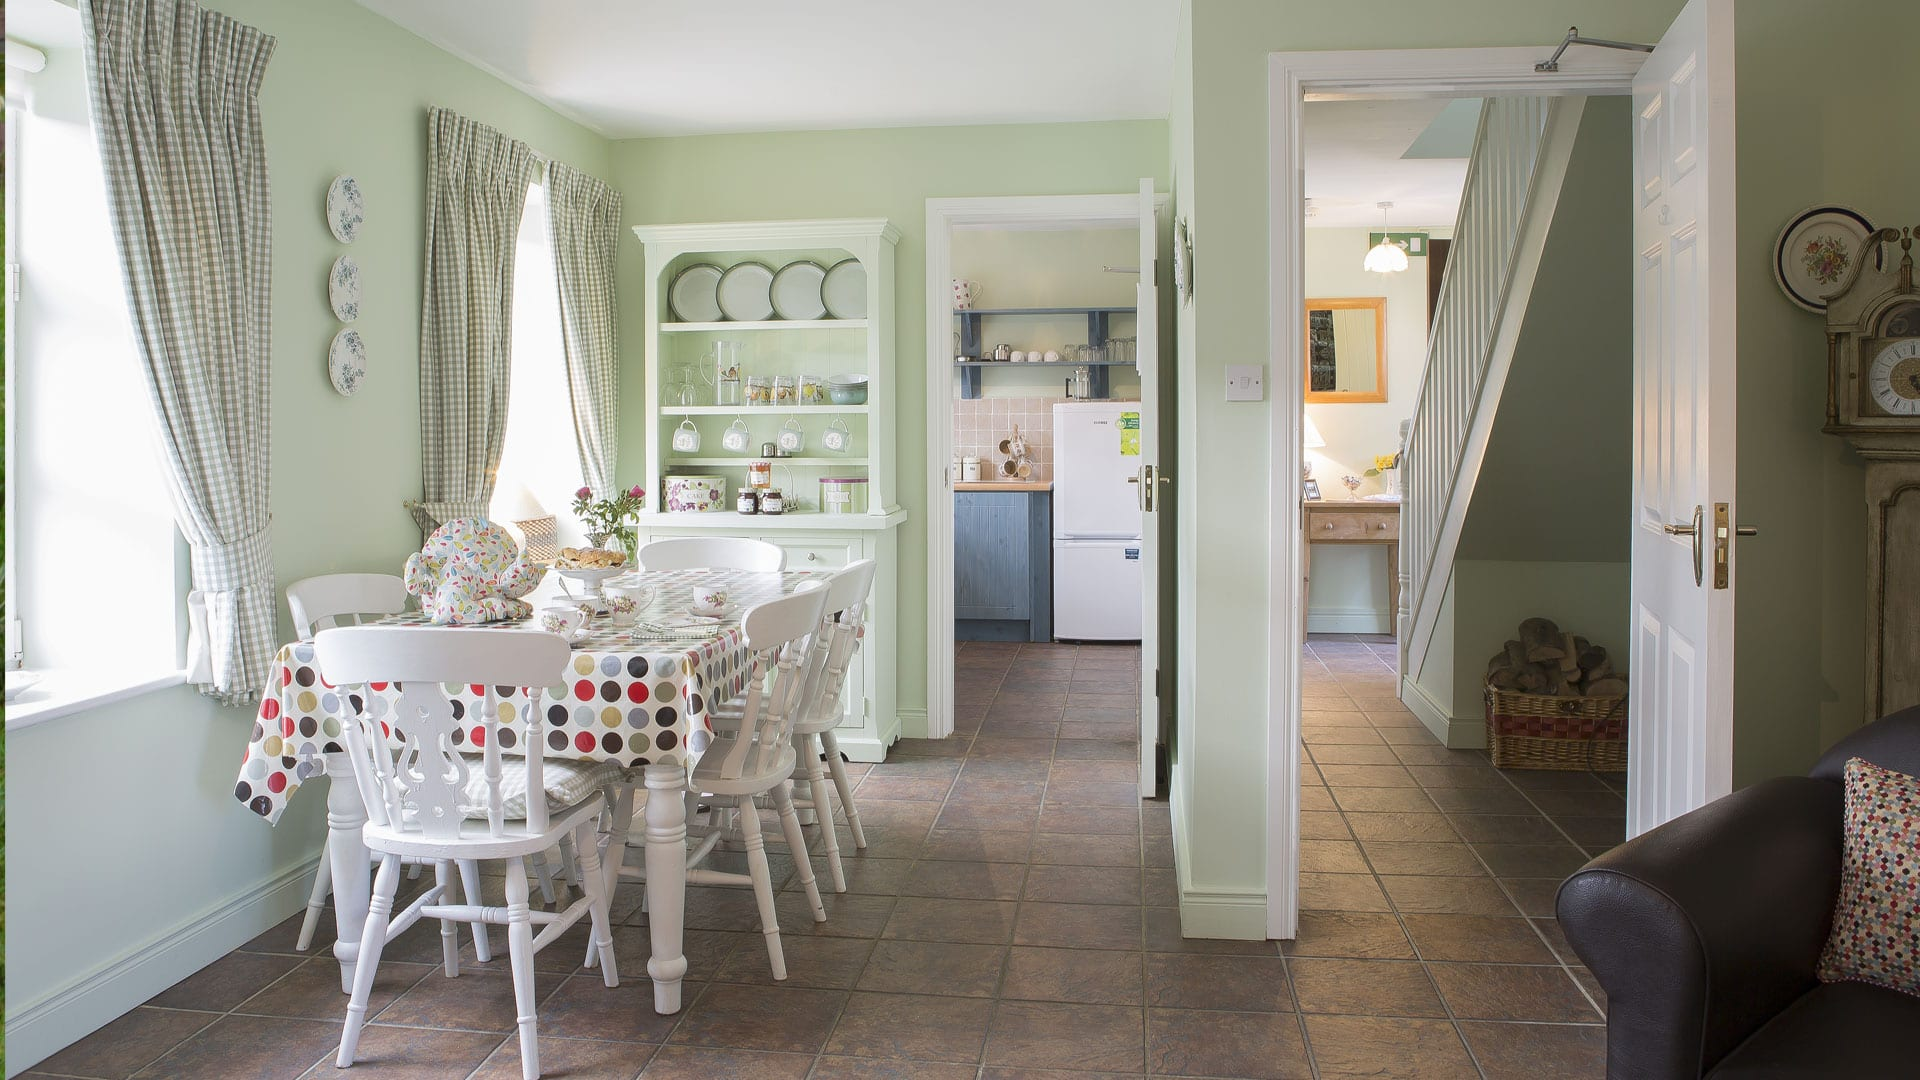 Ornate-Decor-Kitchen-Afternoon-Tea-Scones-Coffee-Cups-Teapot-Holiday-Homes-Ireland-Meath-Dunshaughlin-Self-Catering